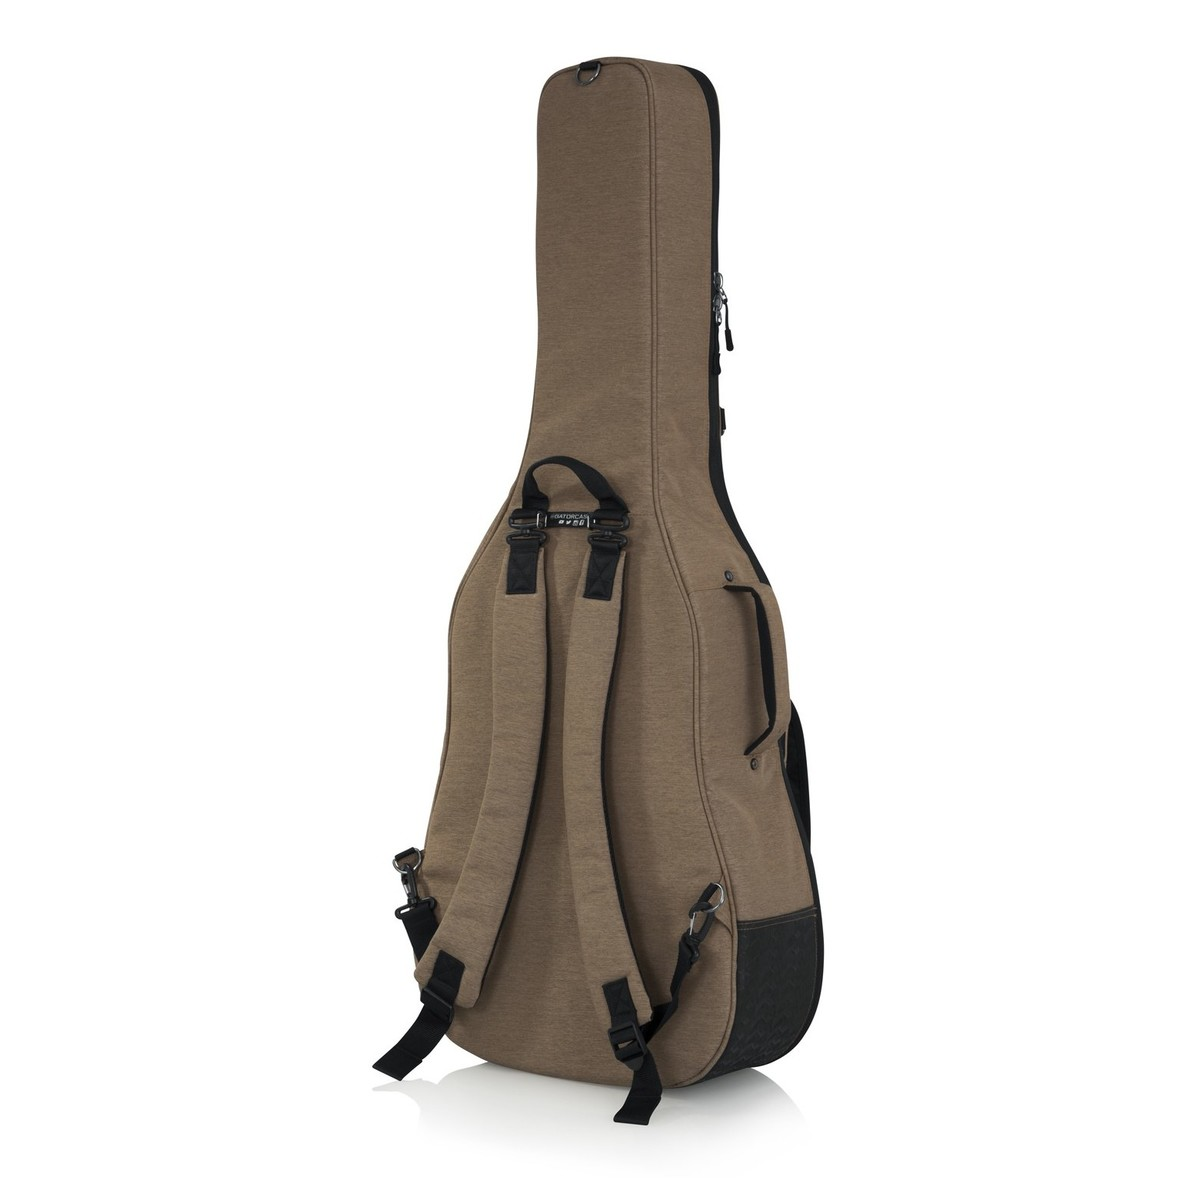 Gator Gt Acoustic Tan Transit Series Guitar Bag At Go Back Gallery For Electric Parts Rear Angled Loading Zoom